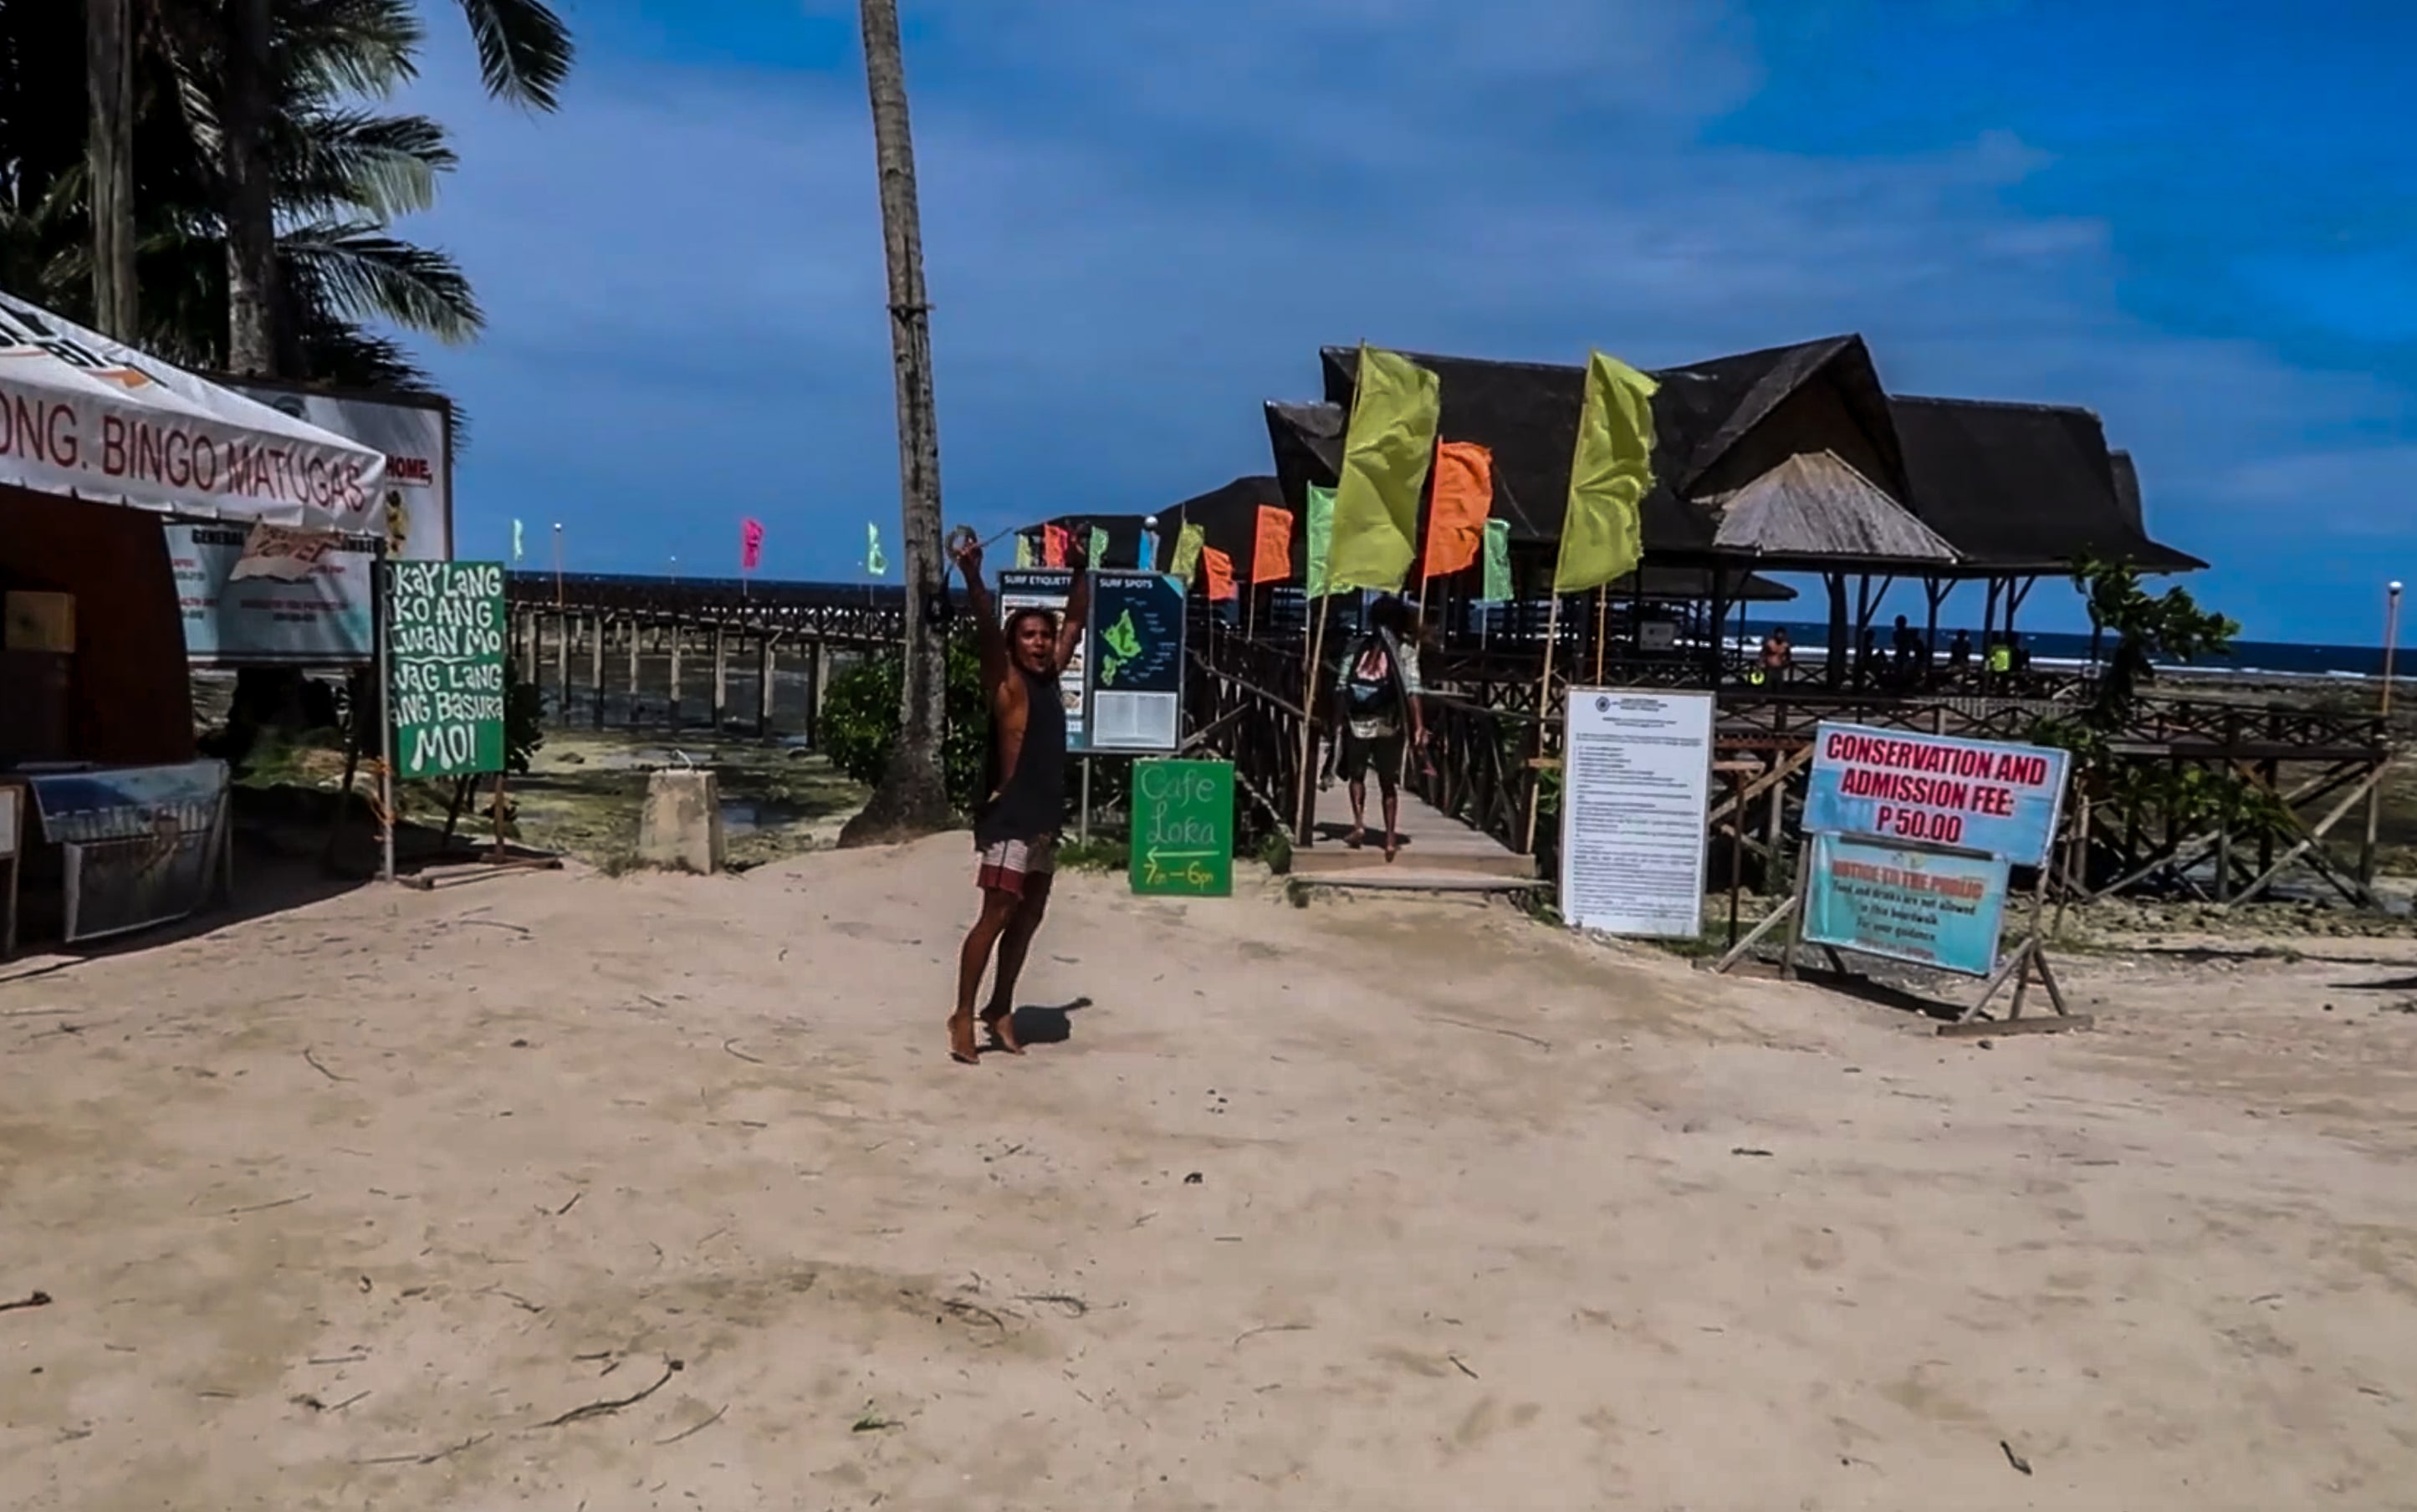 filipino surfer cheering at cloud 9 surfing spot in siargao philippines